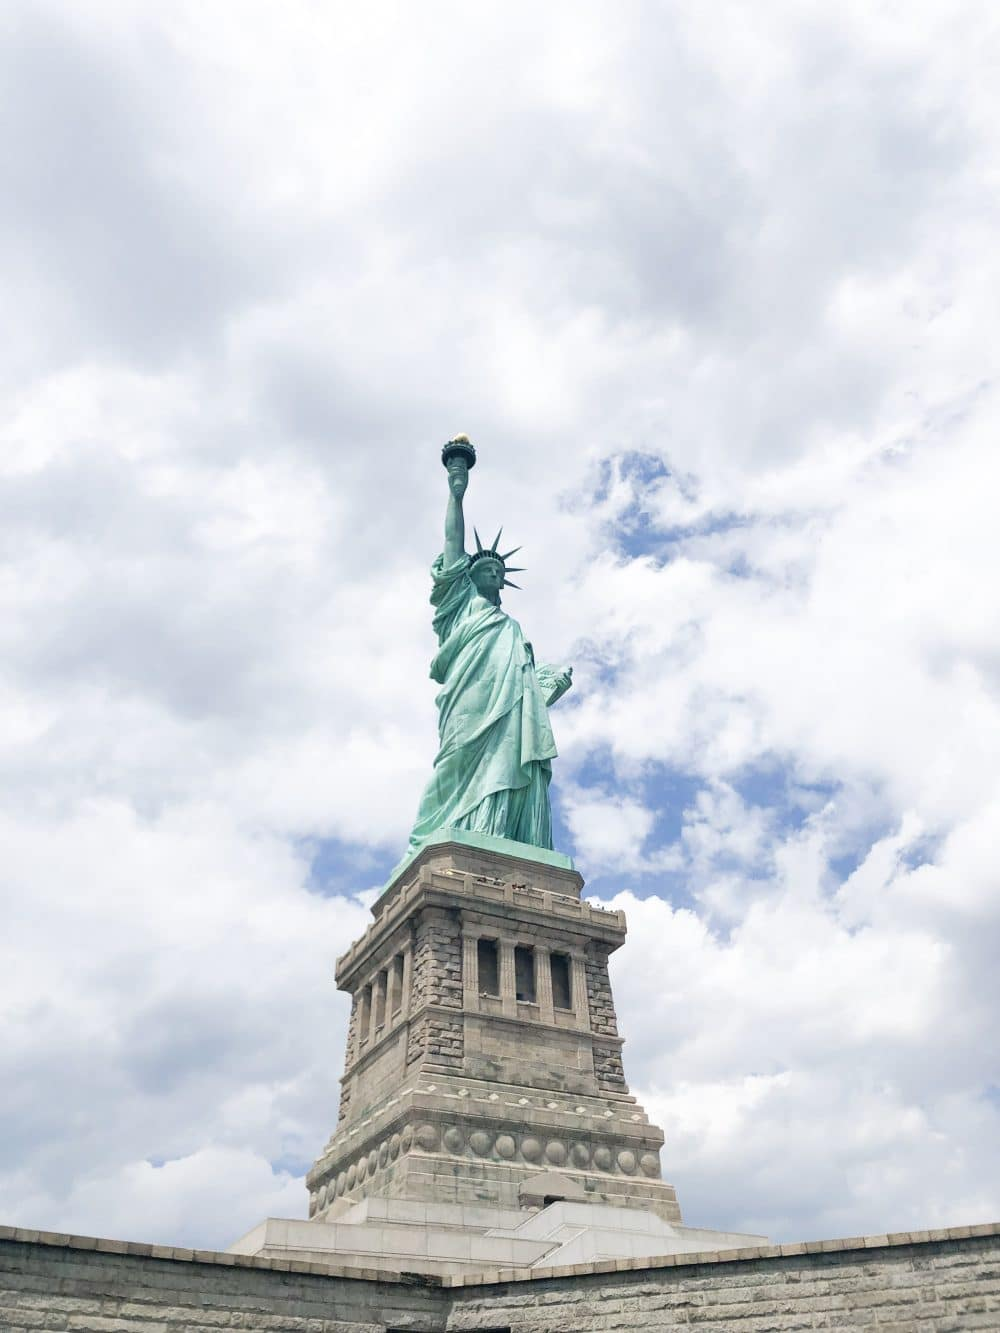 Statue of Liberty information